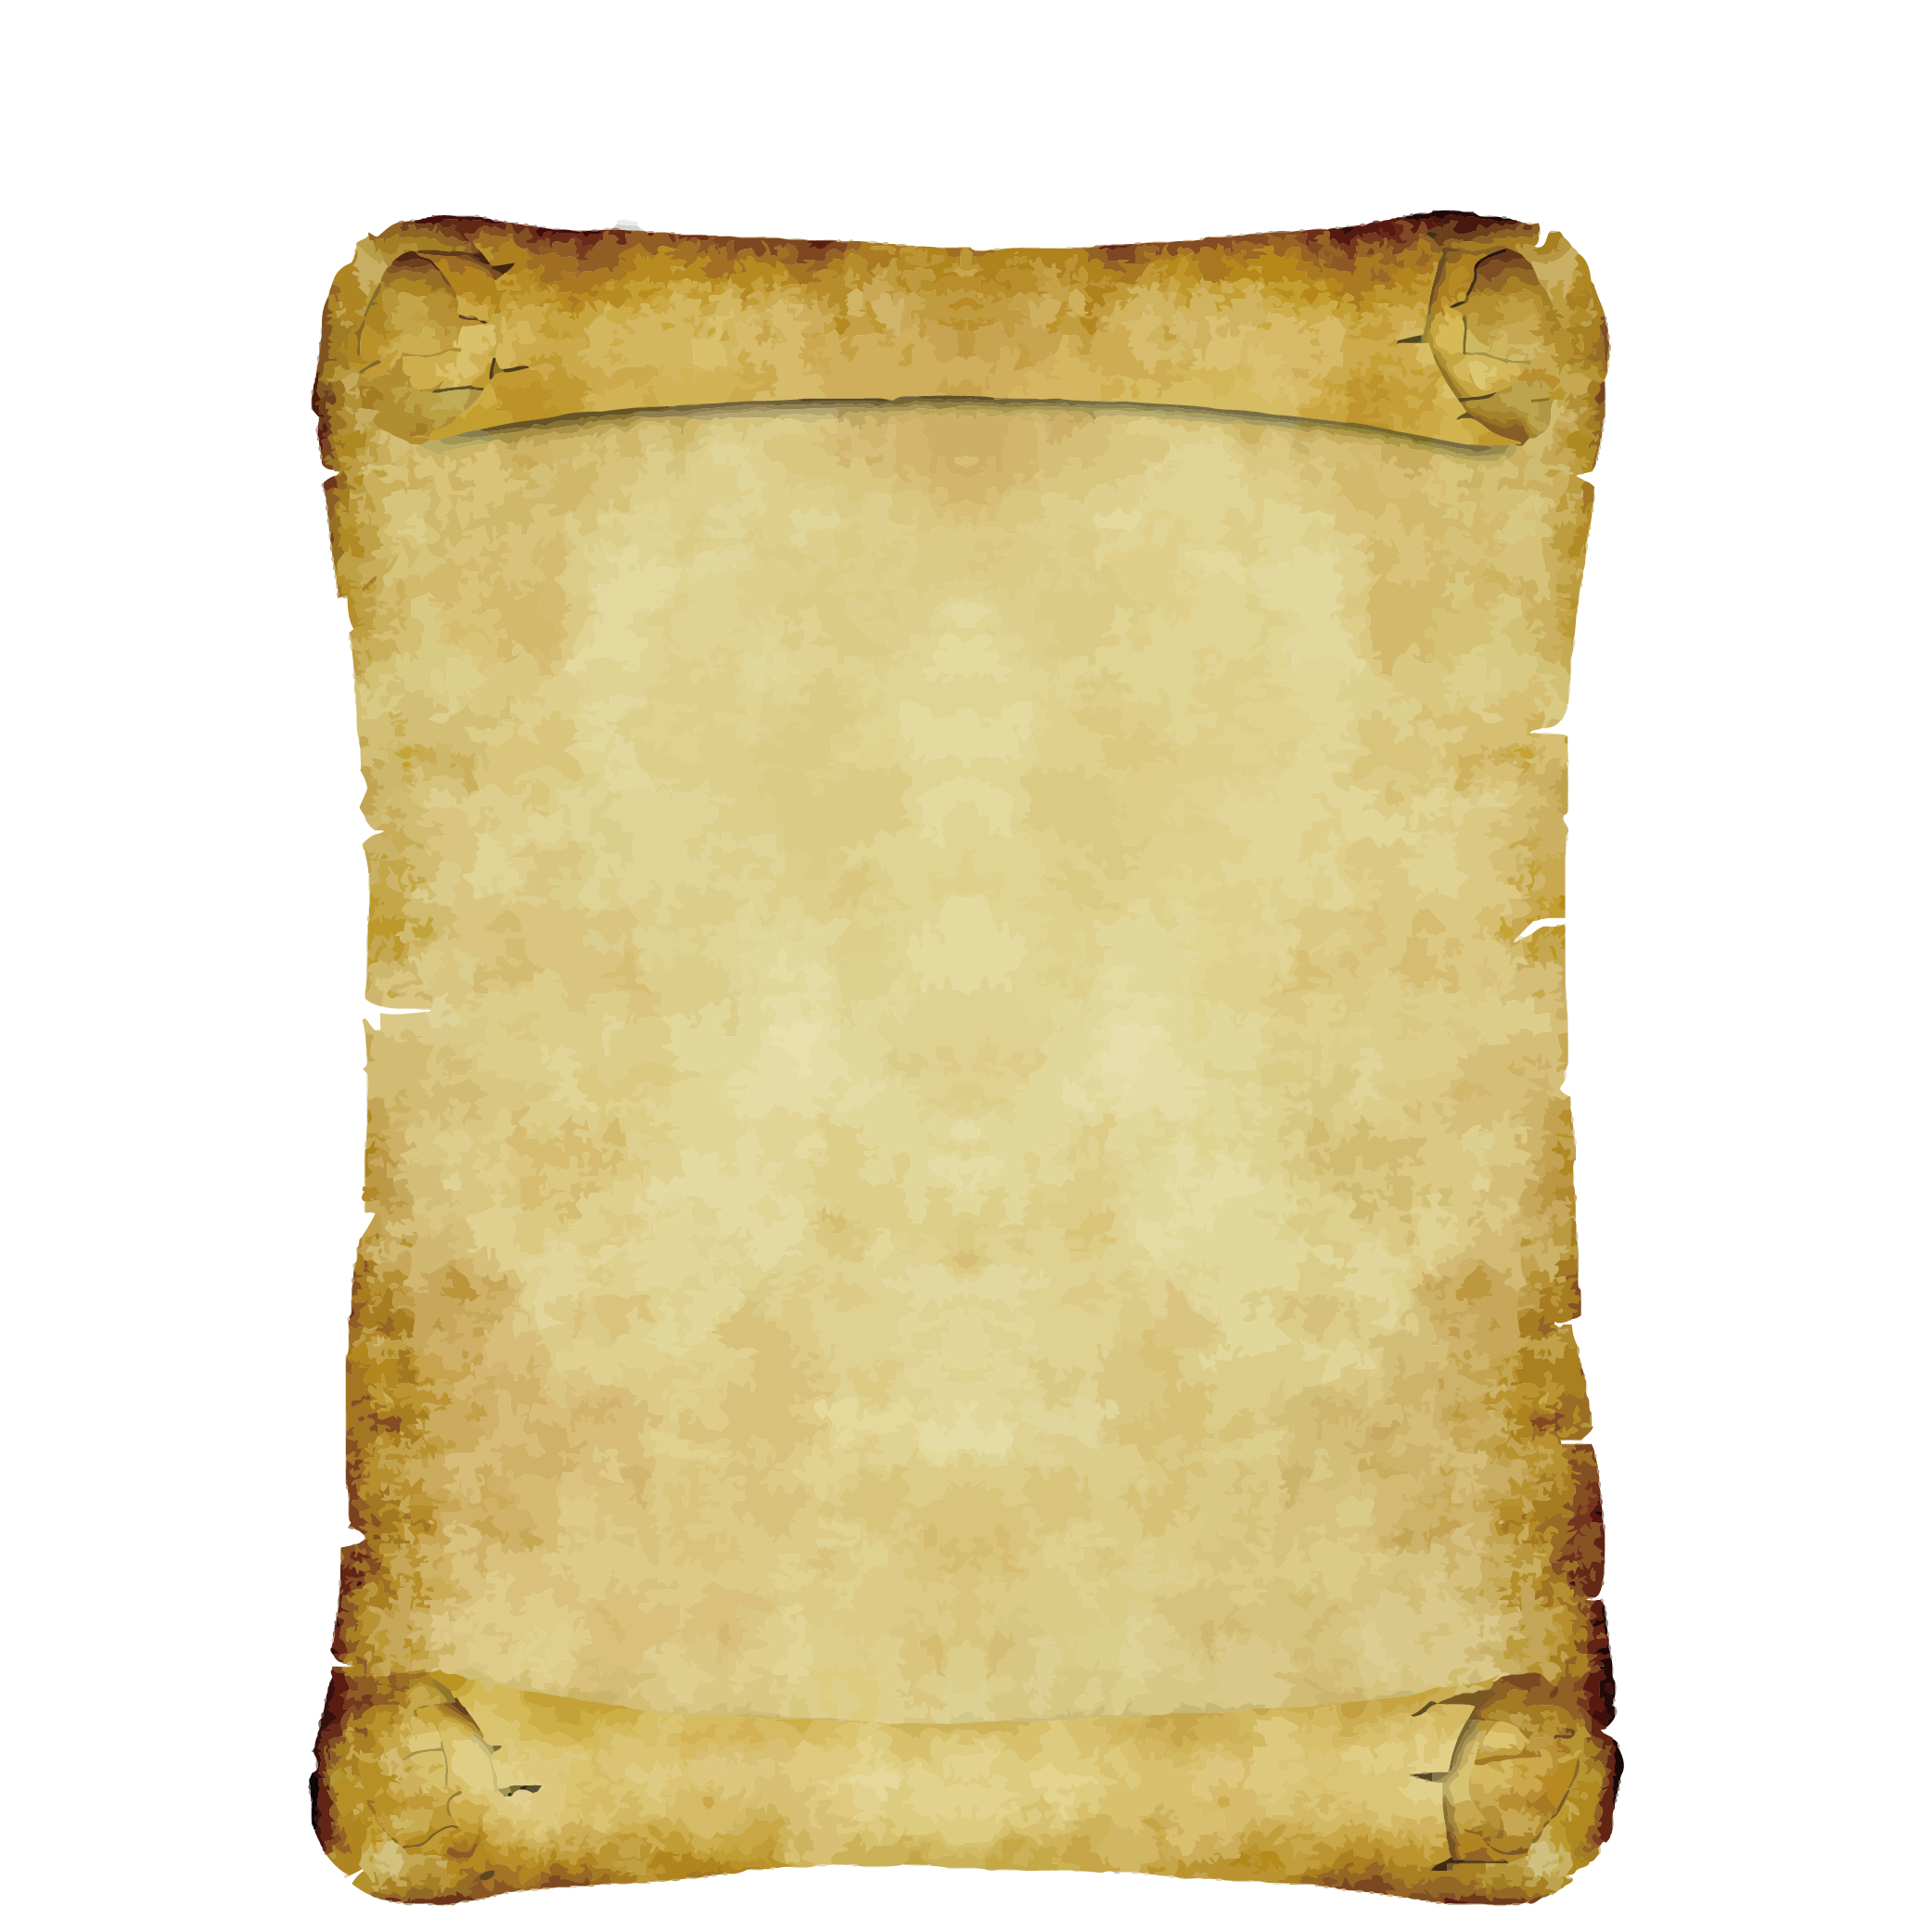 Ancient parchment png. Material transprent free download